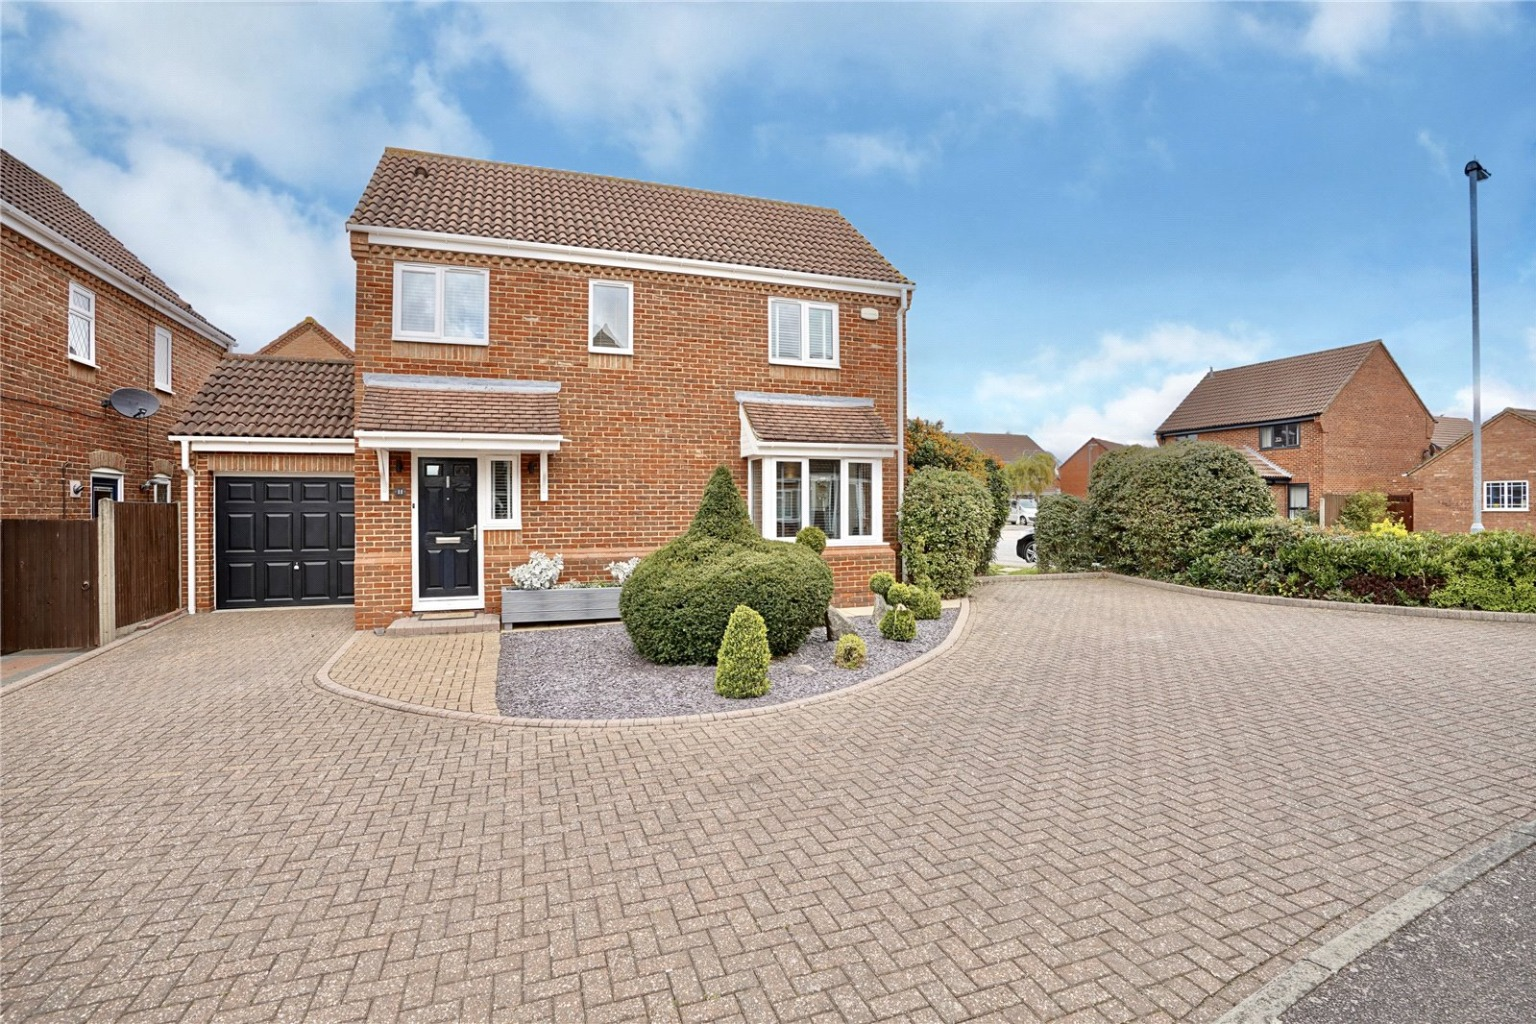 3 bed detached house for sale in Popham Close, St. Neots  - Property Image 1